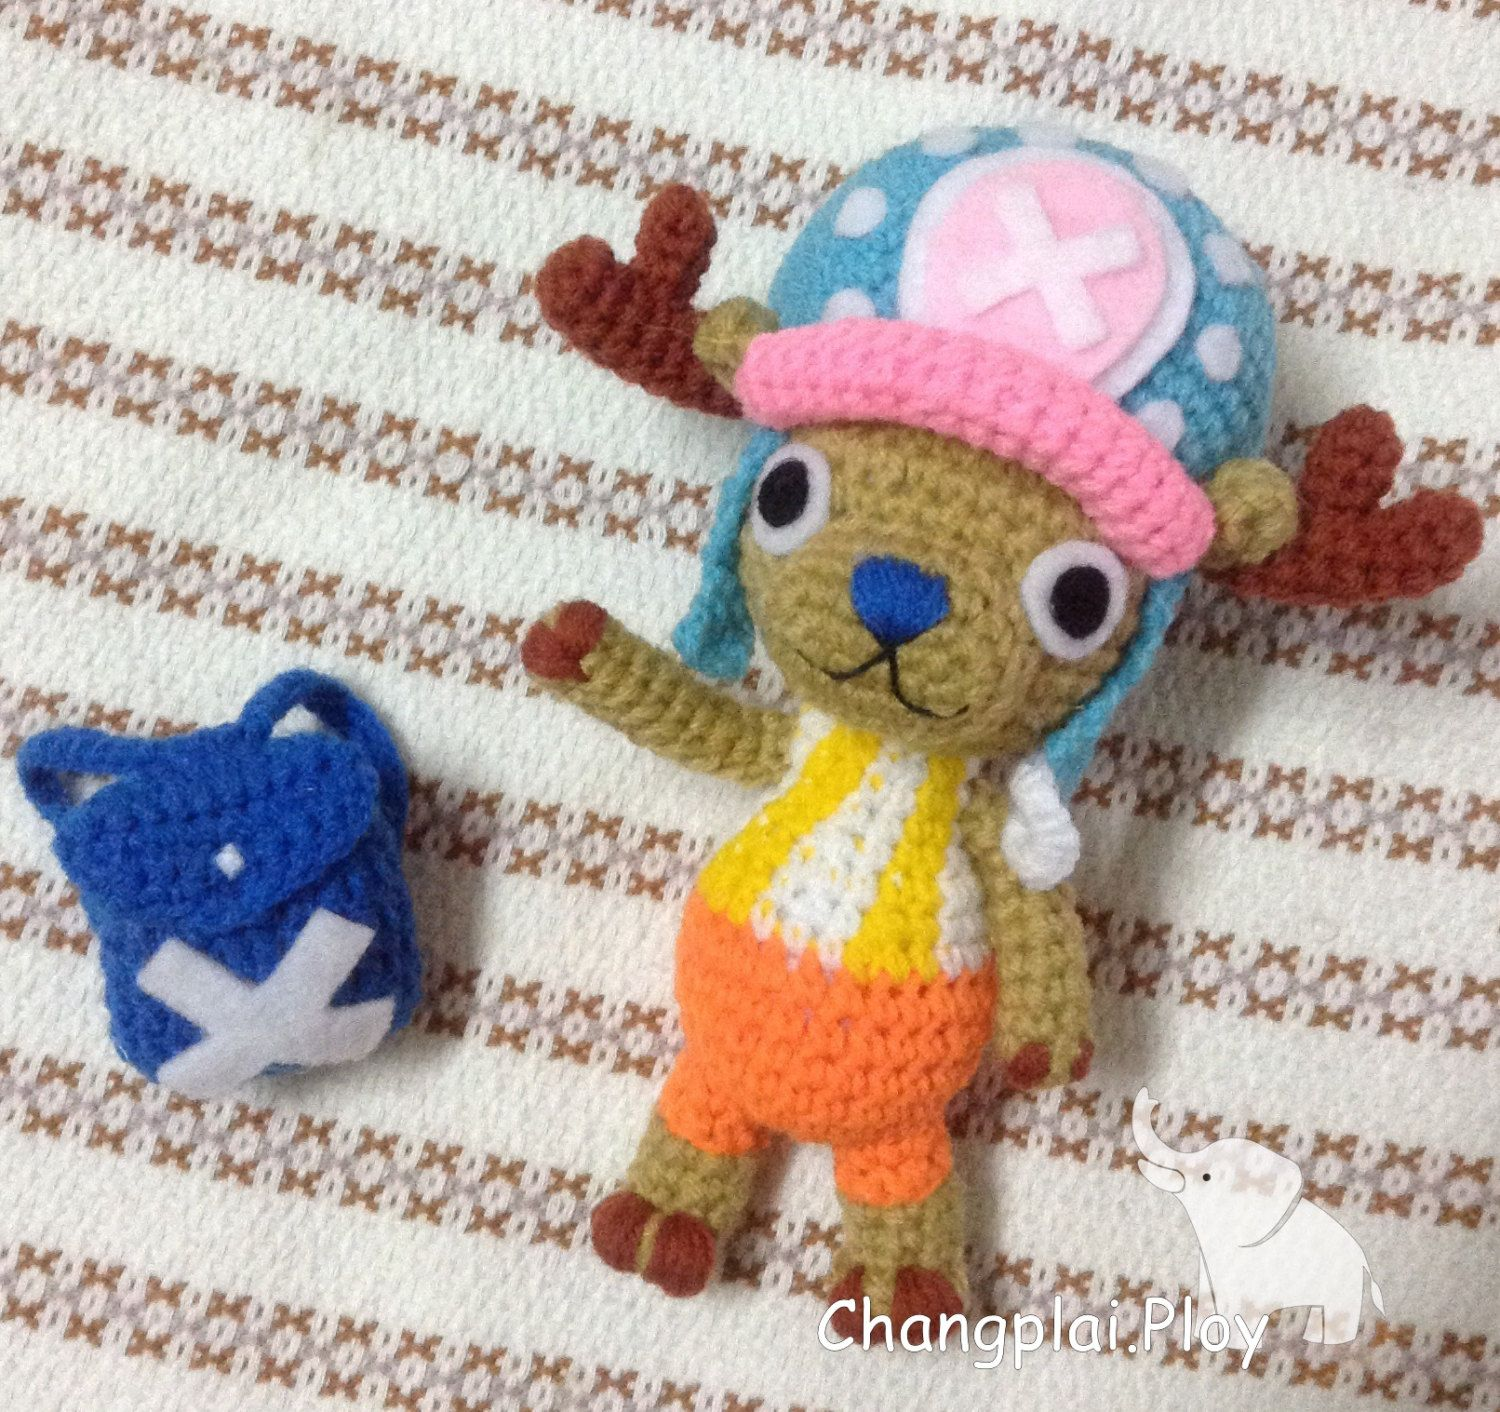 PATTERN - Tony Tony Chopper - amigurumi japaness pattern! by ...